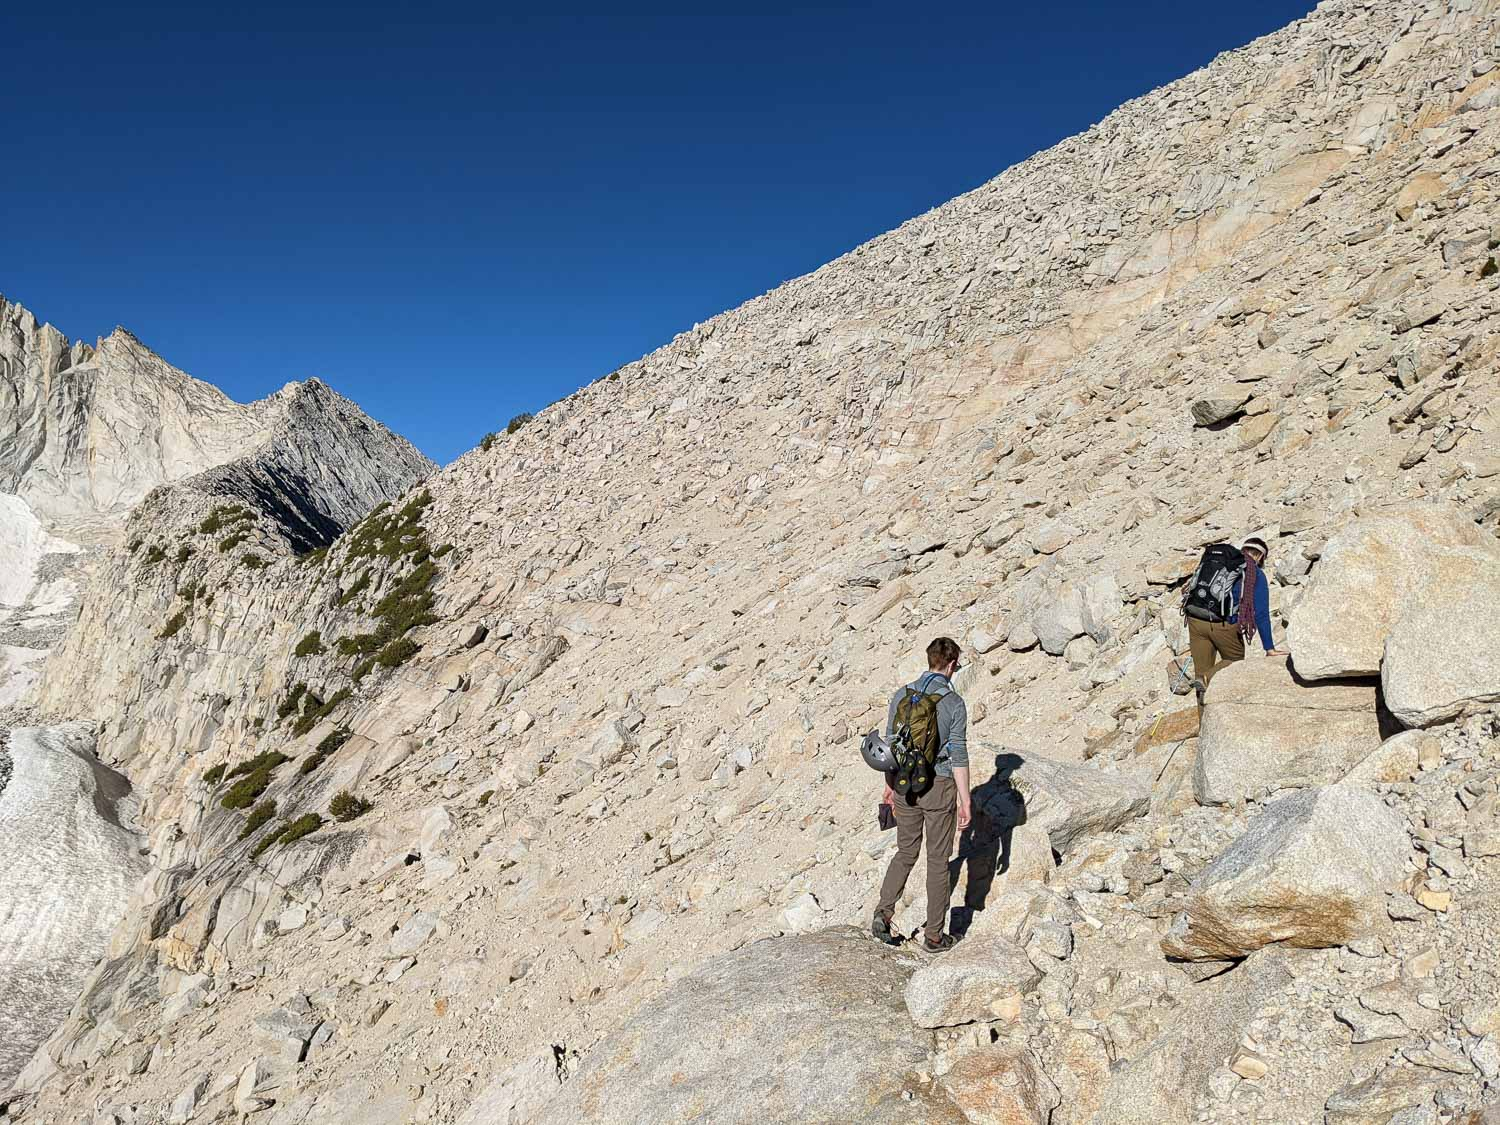 Gaining the North Ridge of Mount Conness